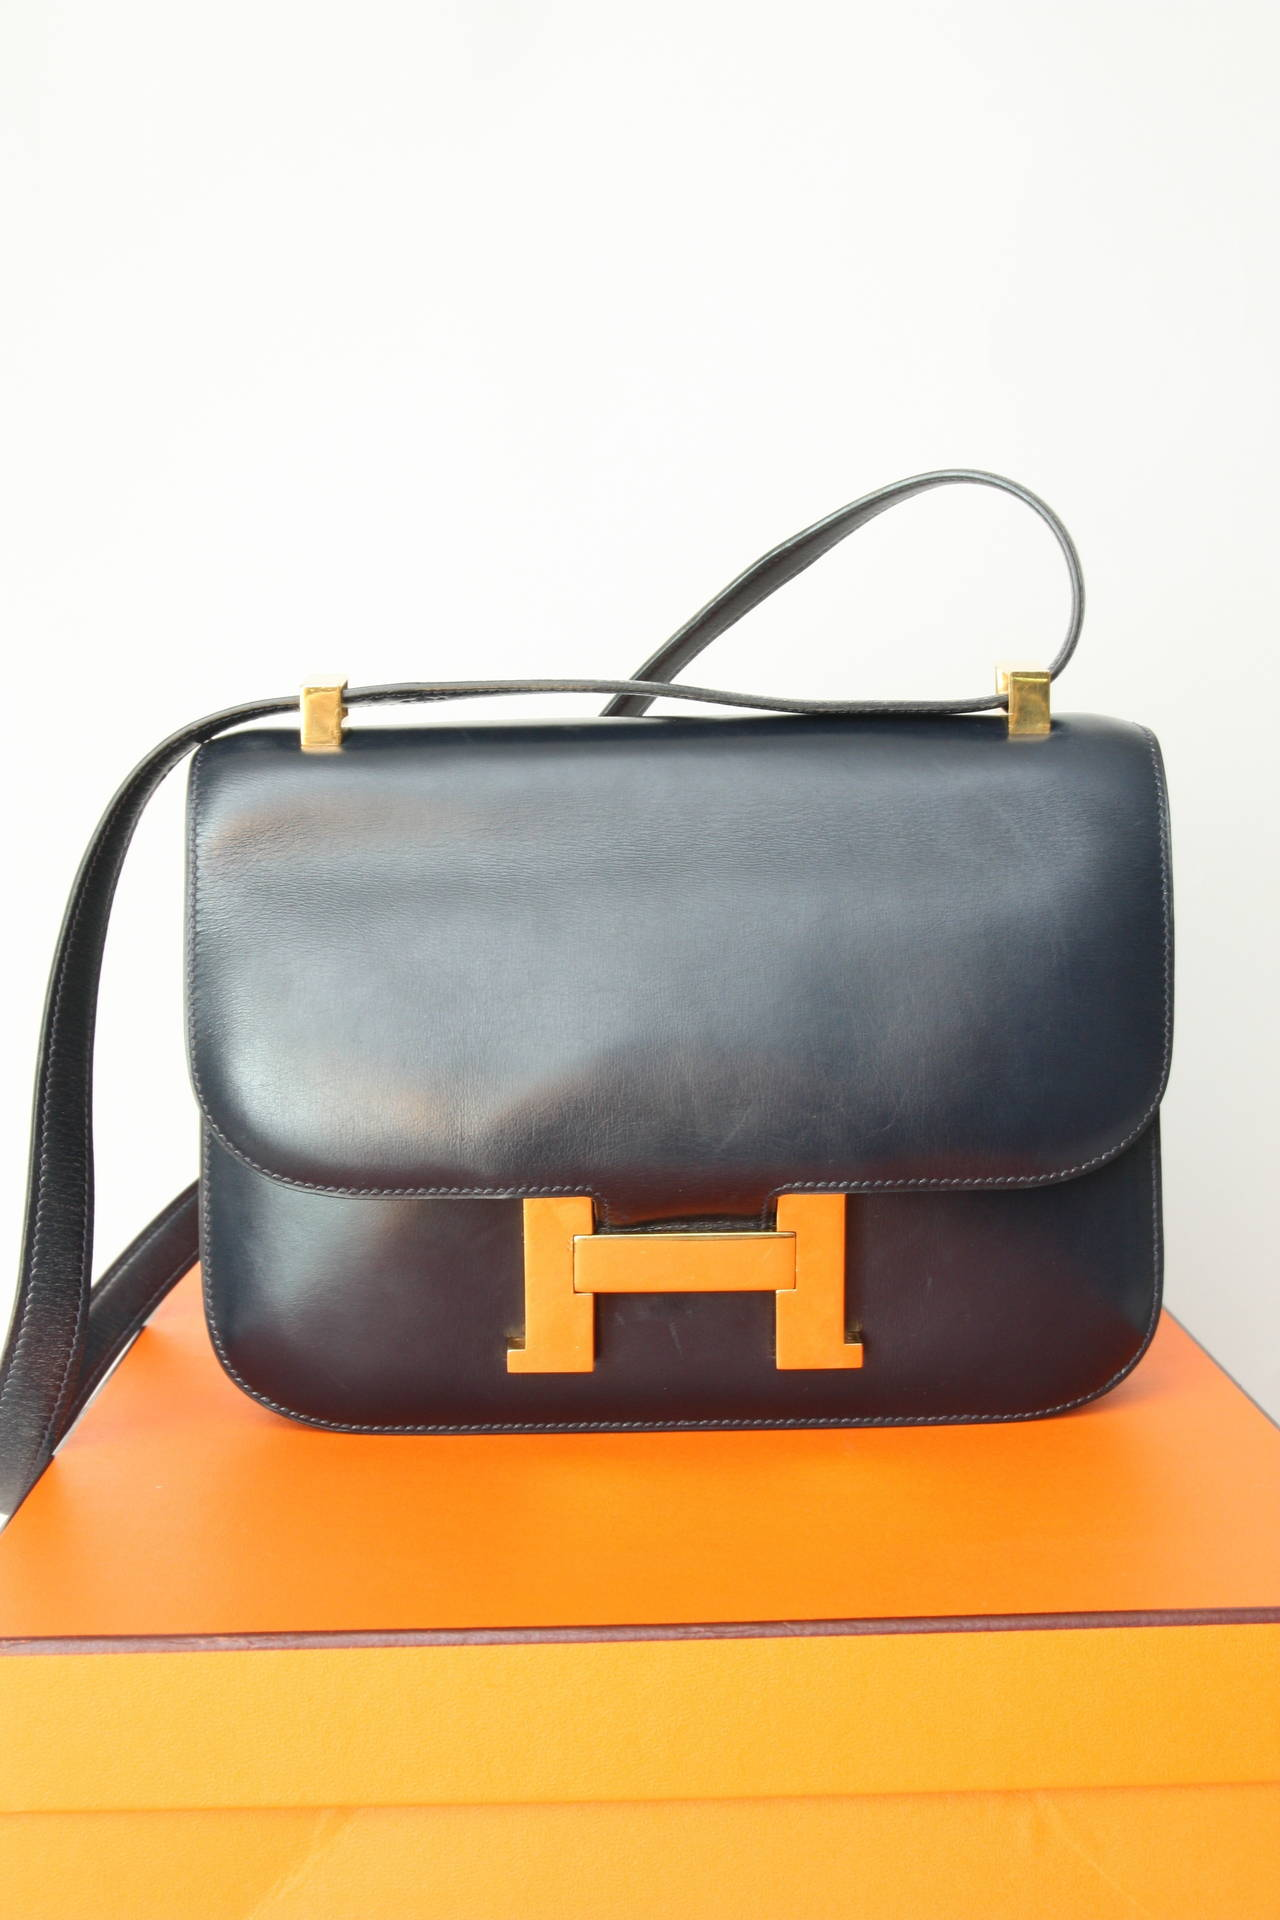 hermes vintage navy blue box leather constance 23cm